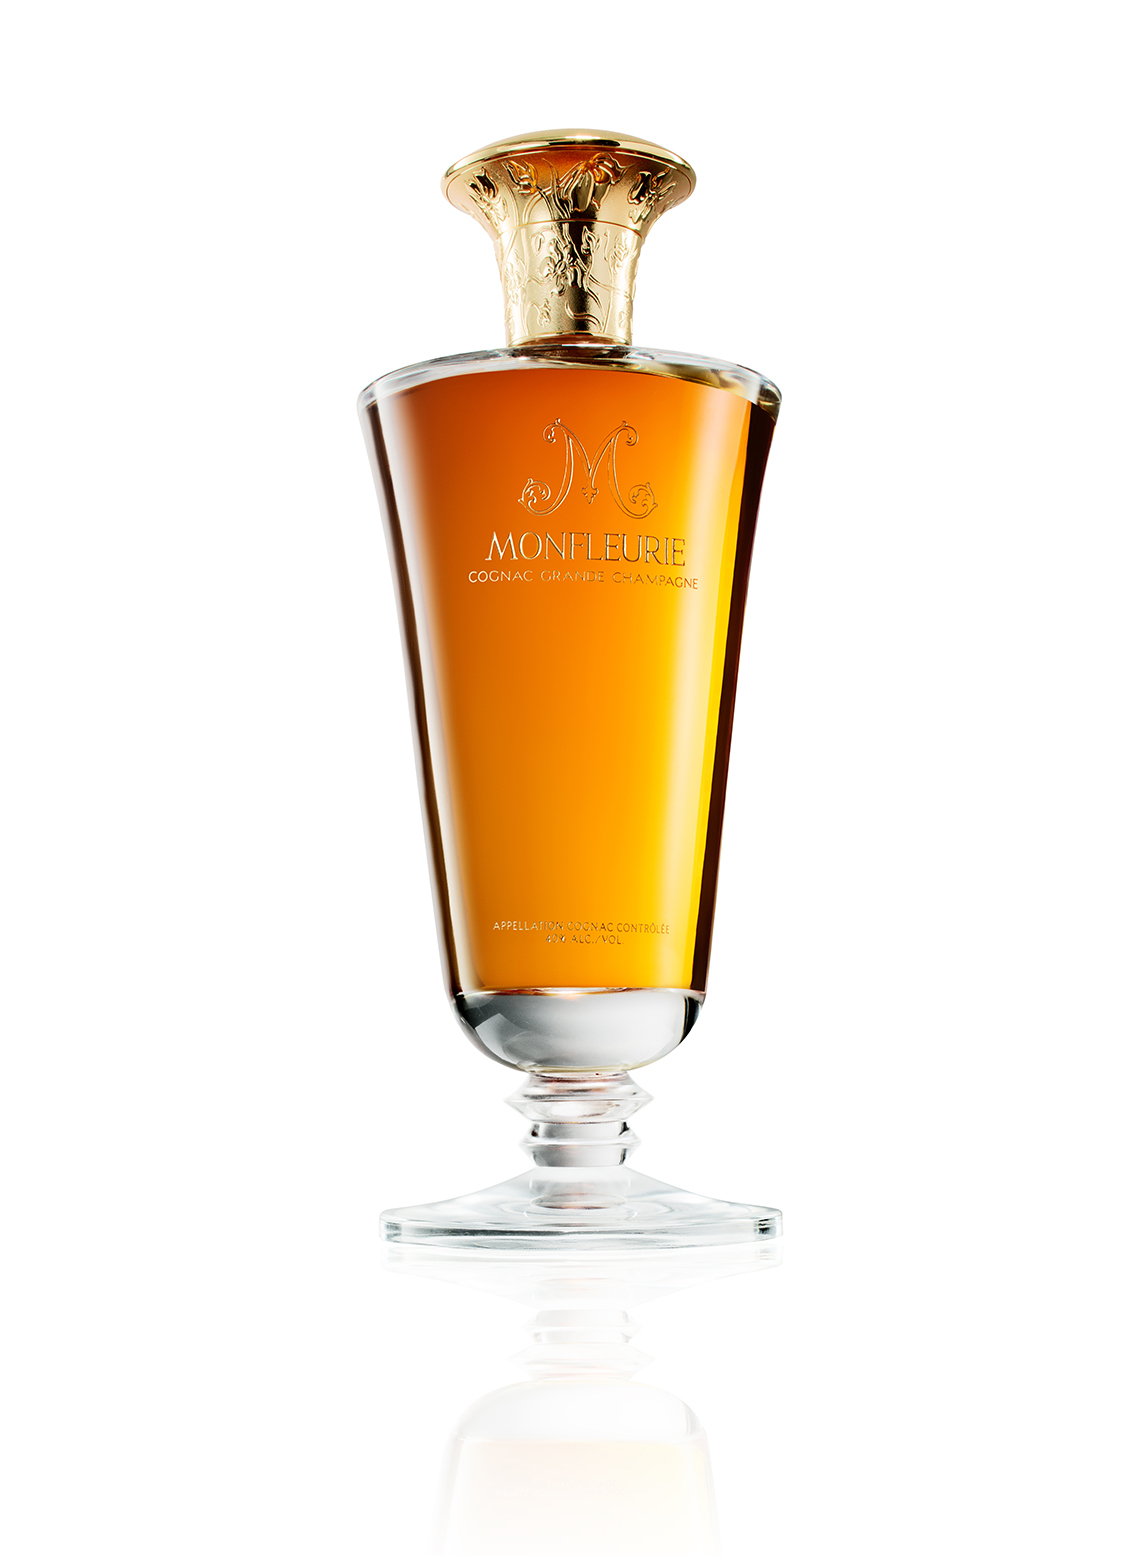 New-york-liquid-phtographer-beverage-phtography-cognac-bottle